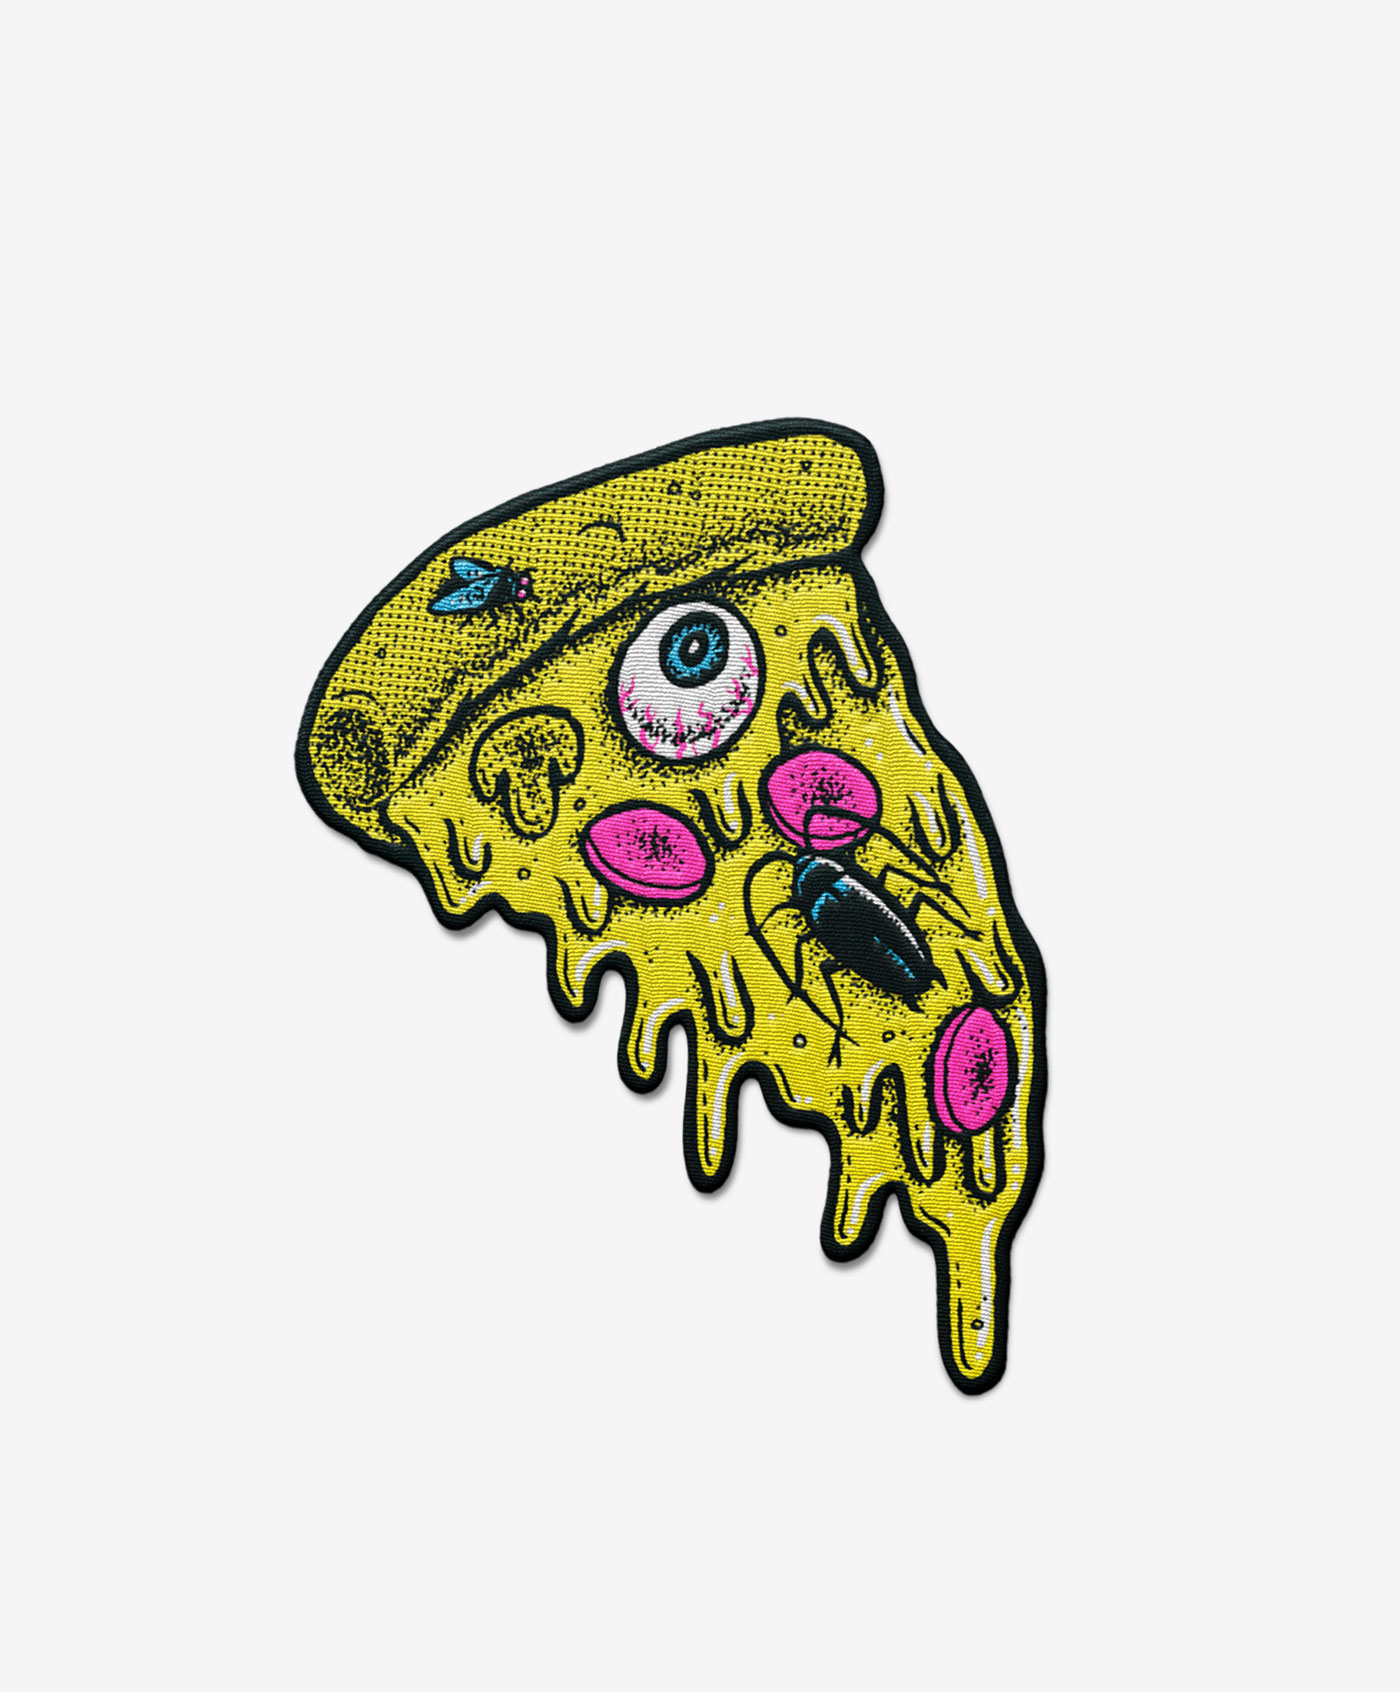 TOXIC-PIZZA-PATCHreal